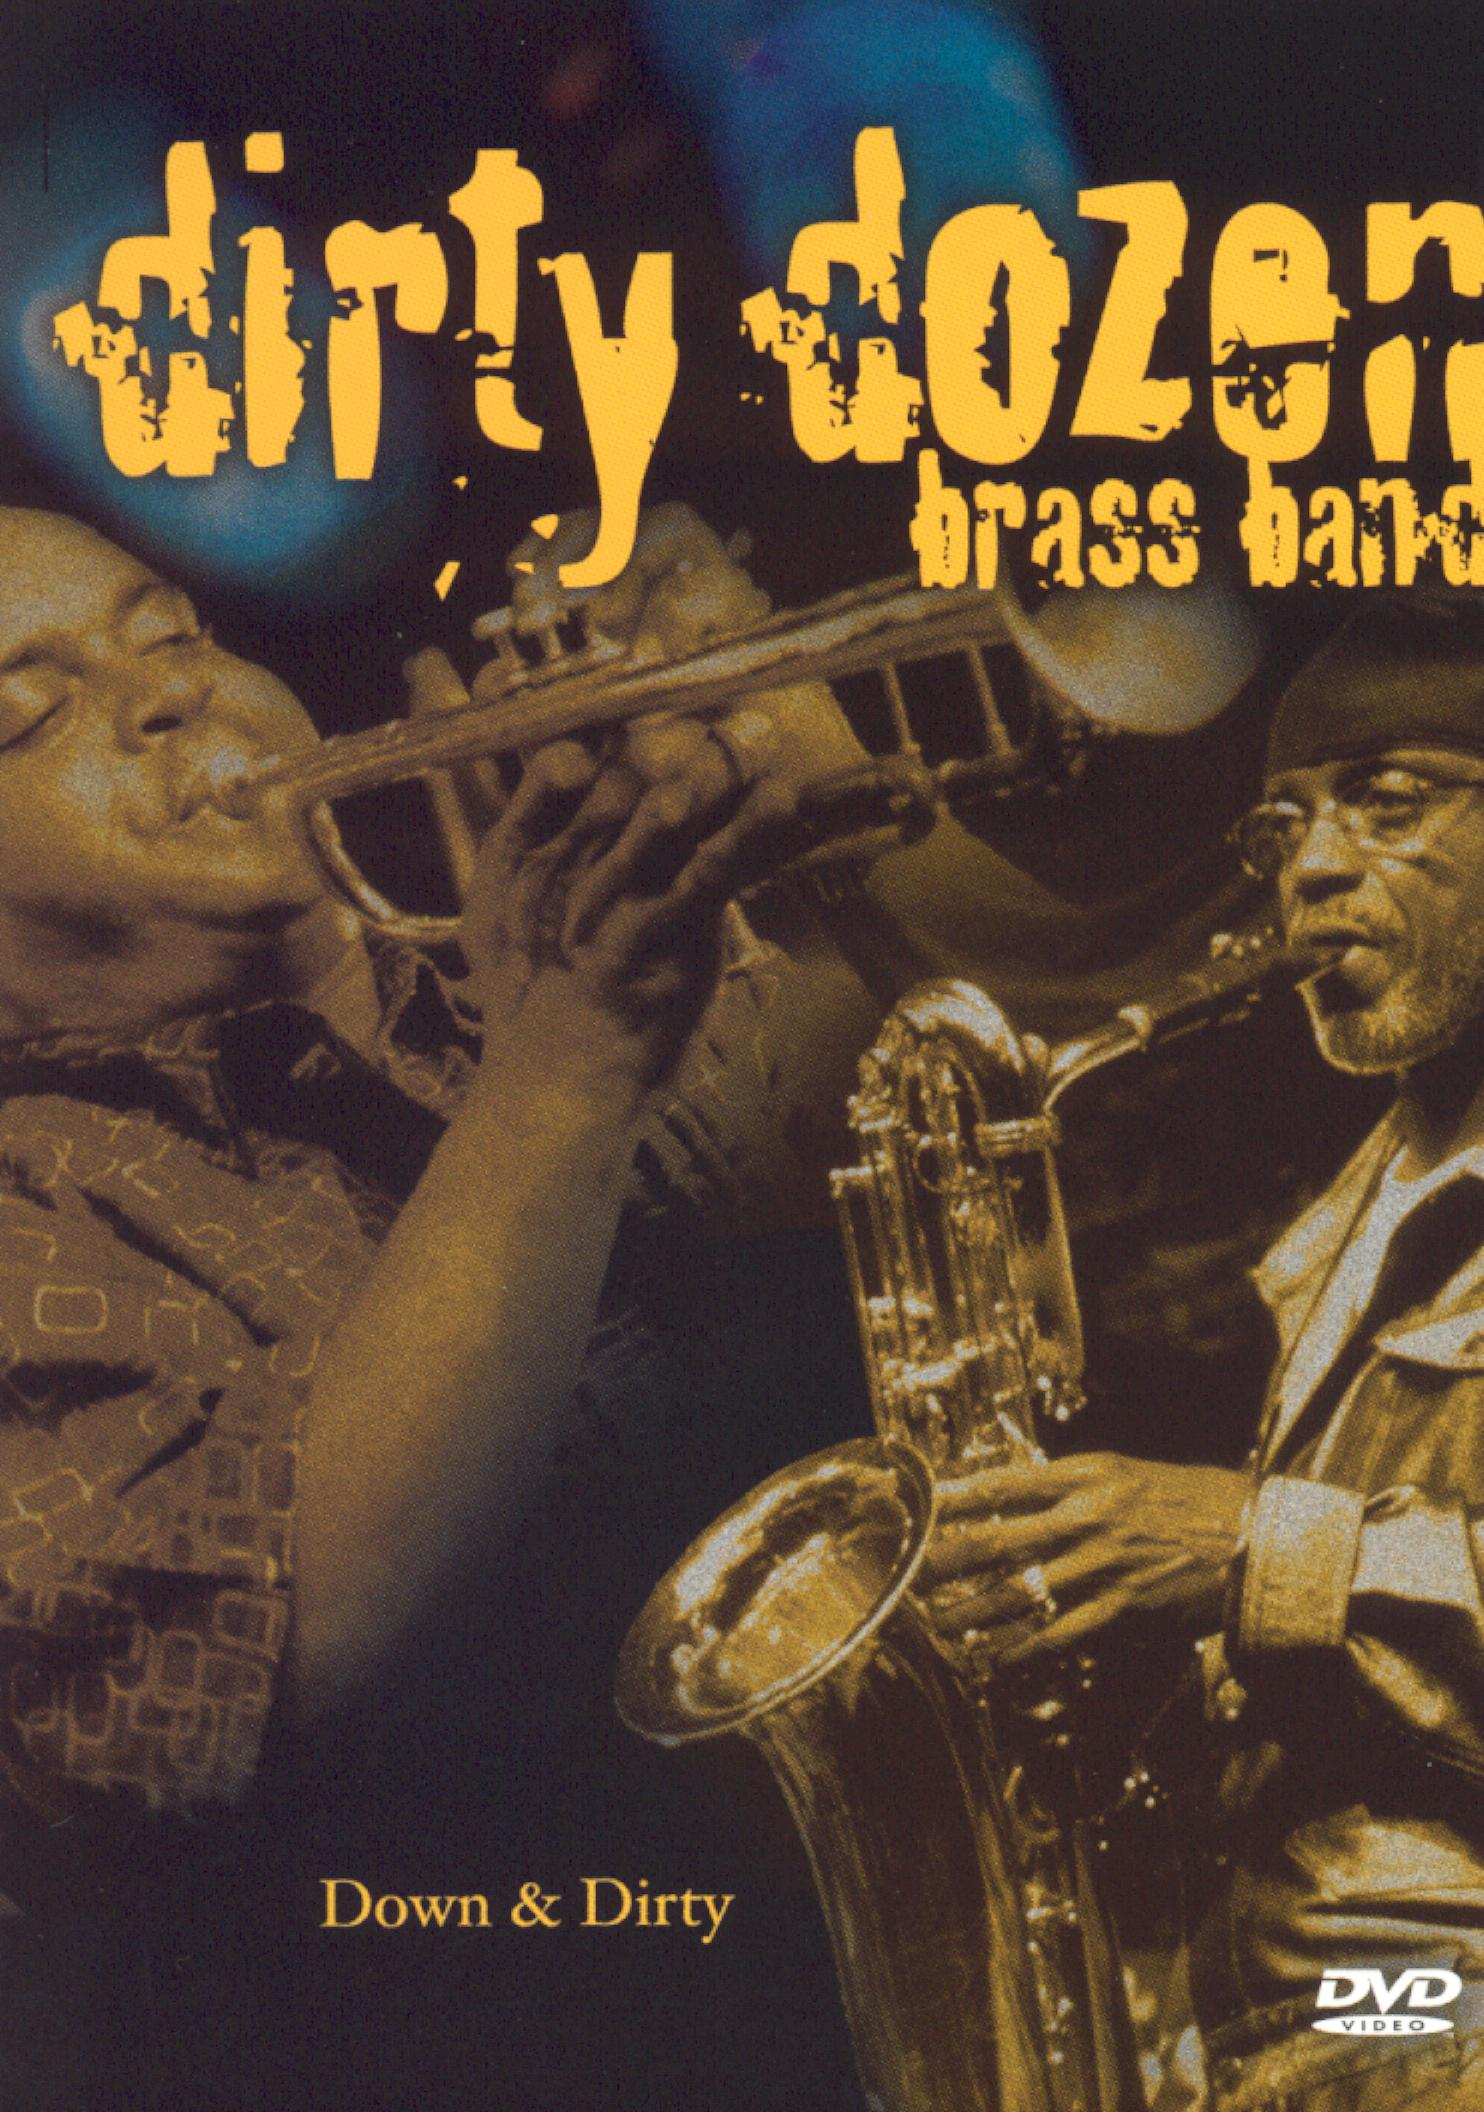 Dirty Dozen Brass Band: Down & Dirty